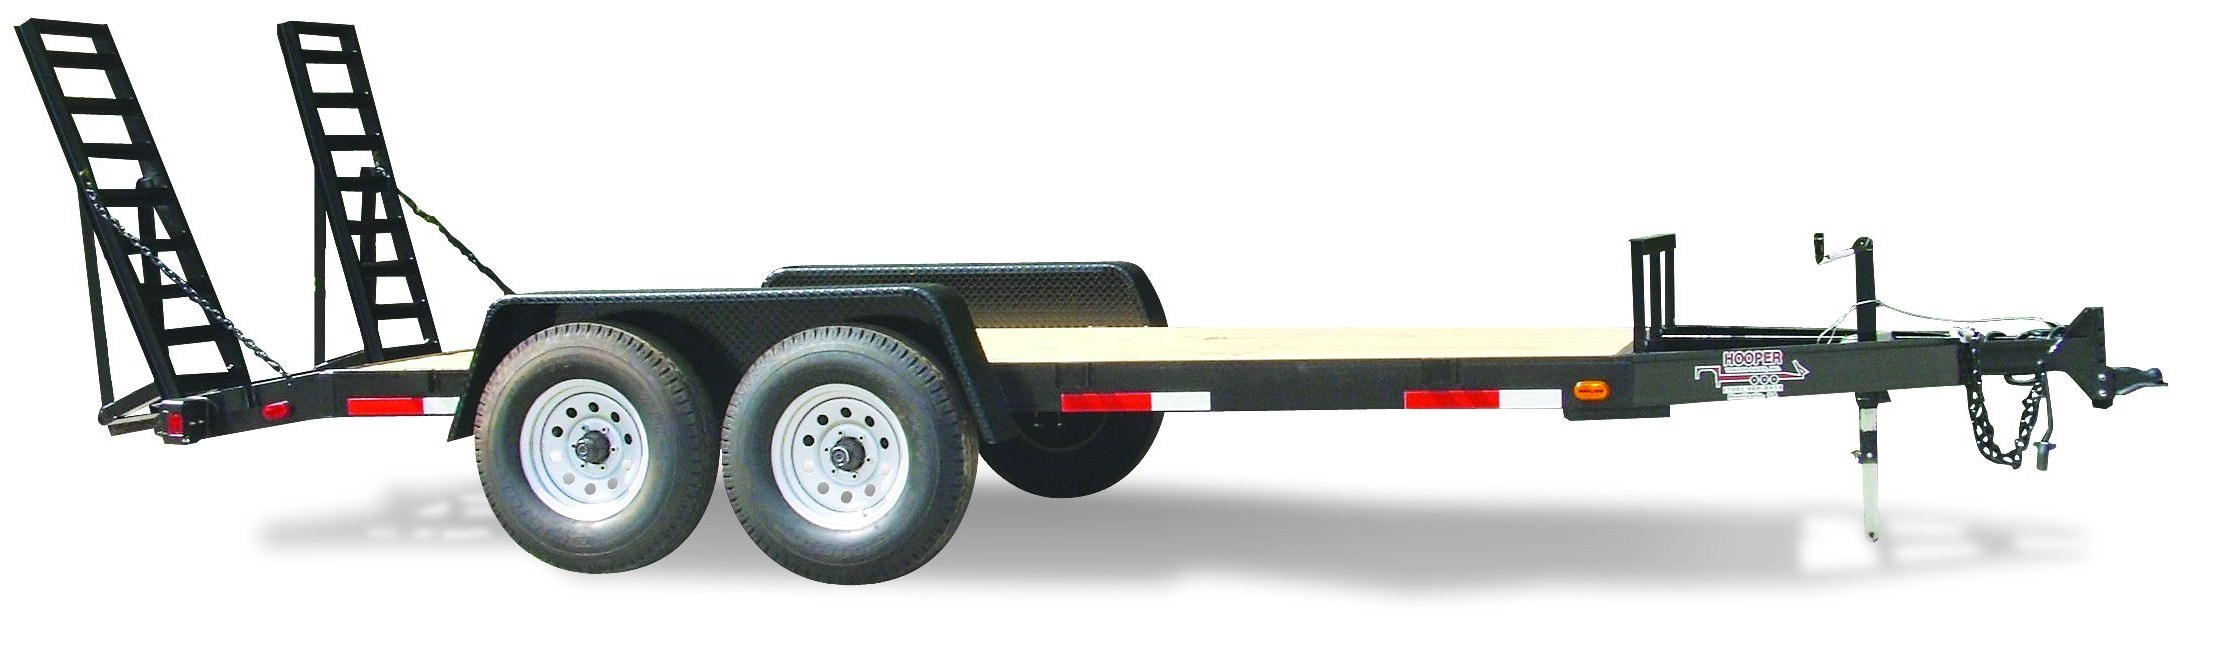 bobcattrailer hooper trailer sales channel iron trailers hooper trailer wiring diagram at bakdesigns.co